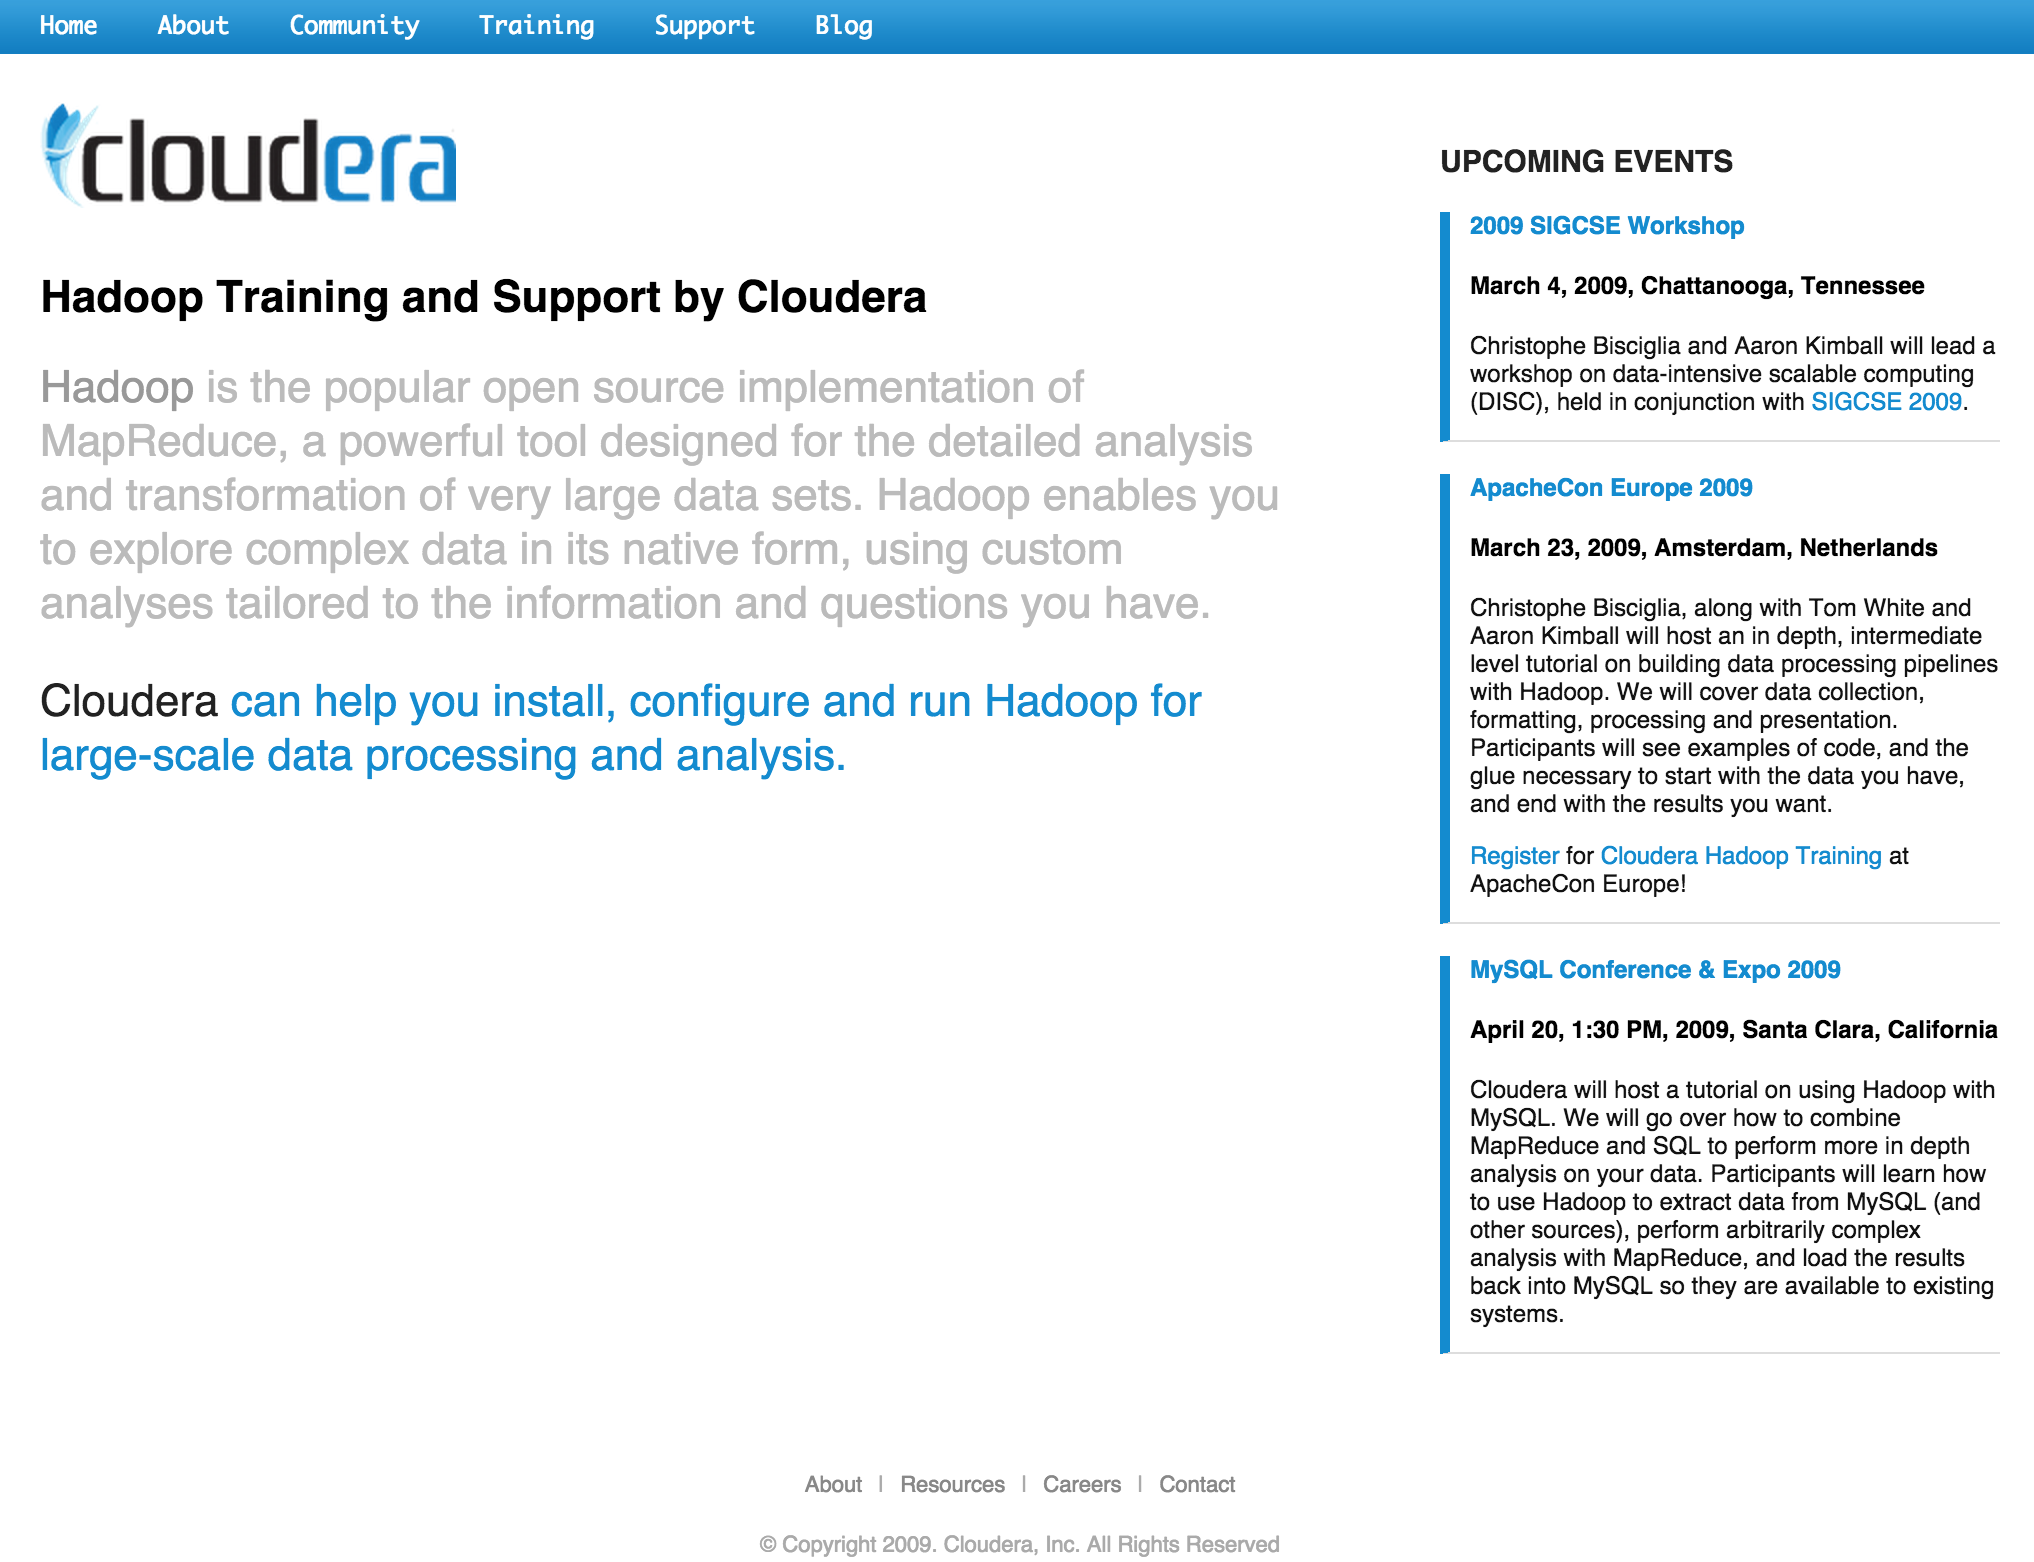 cloudera website